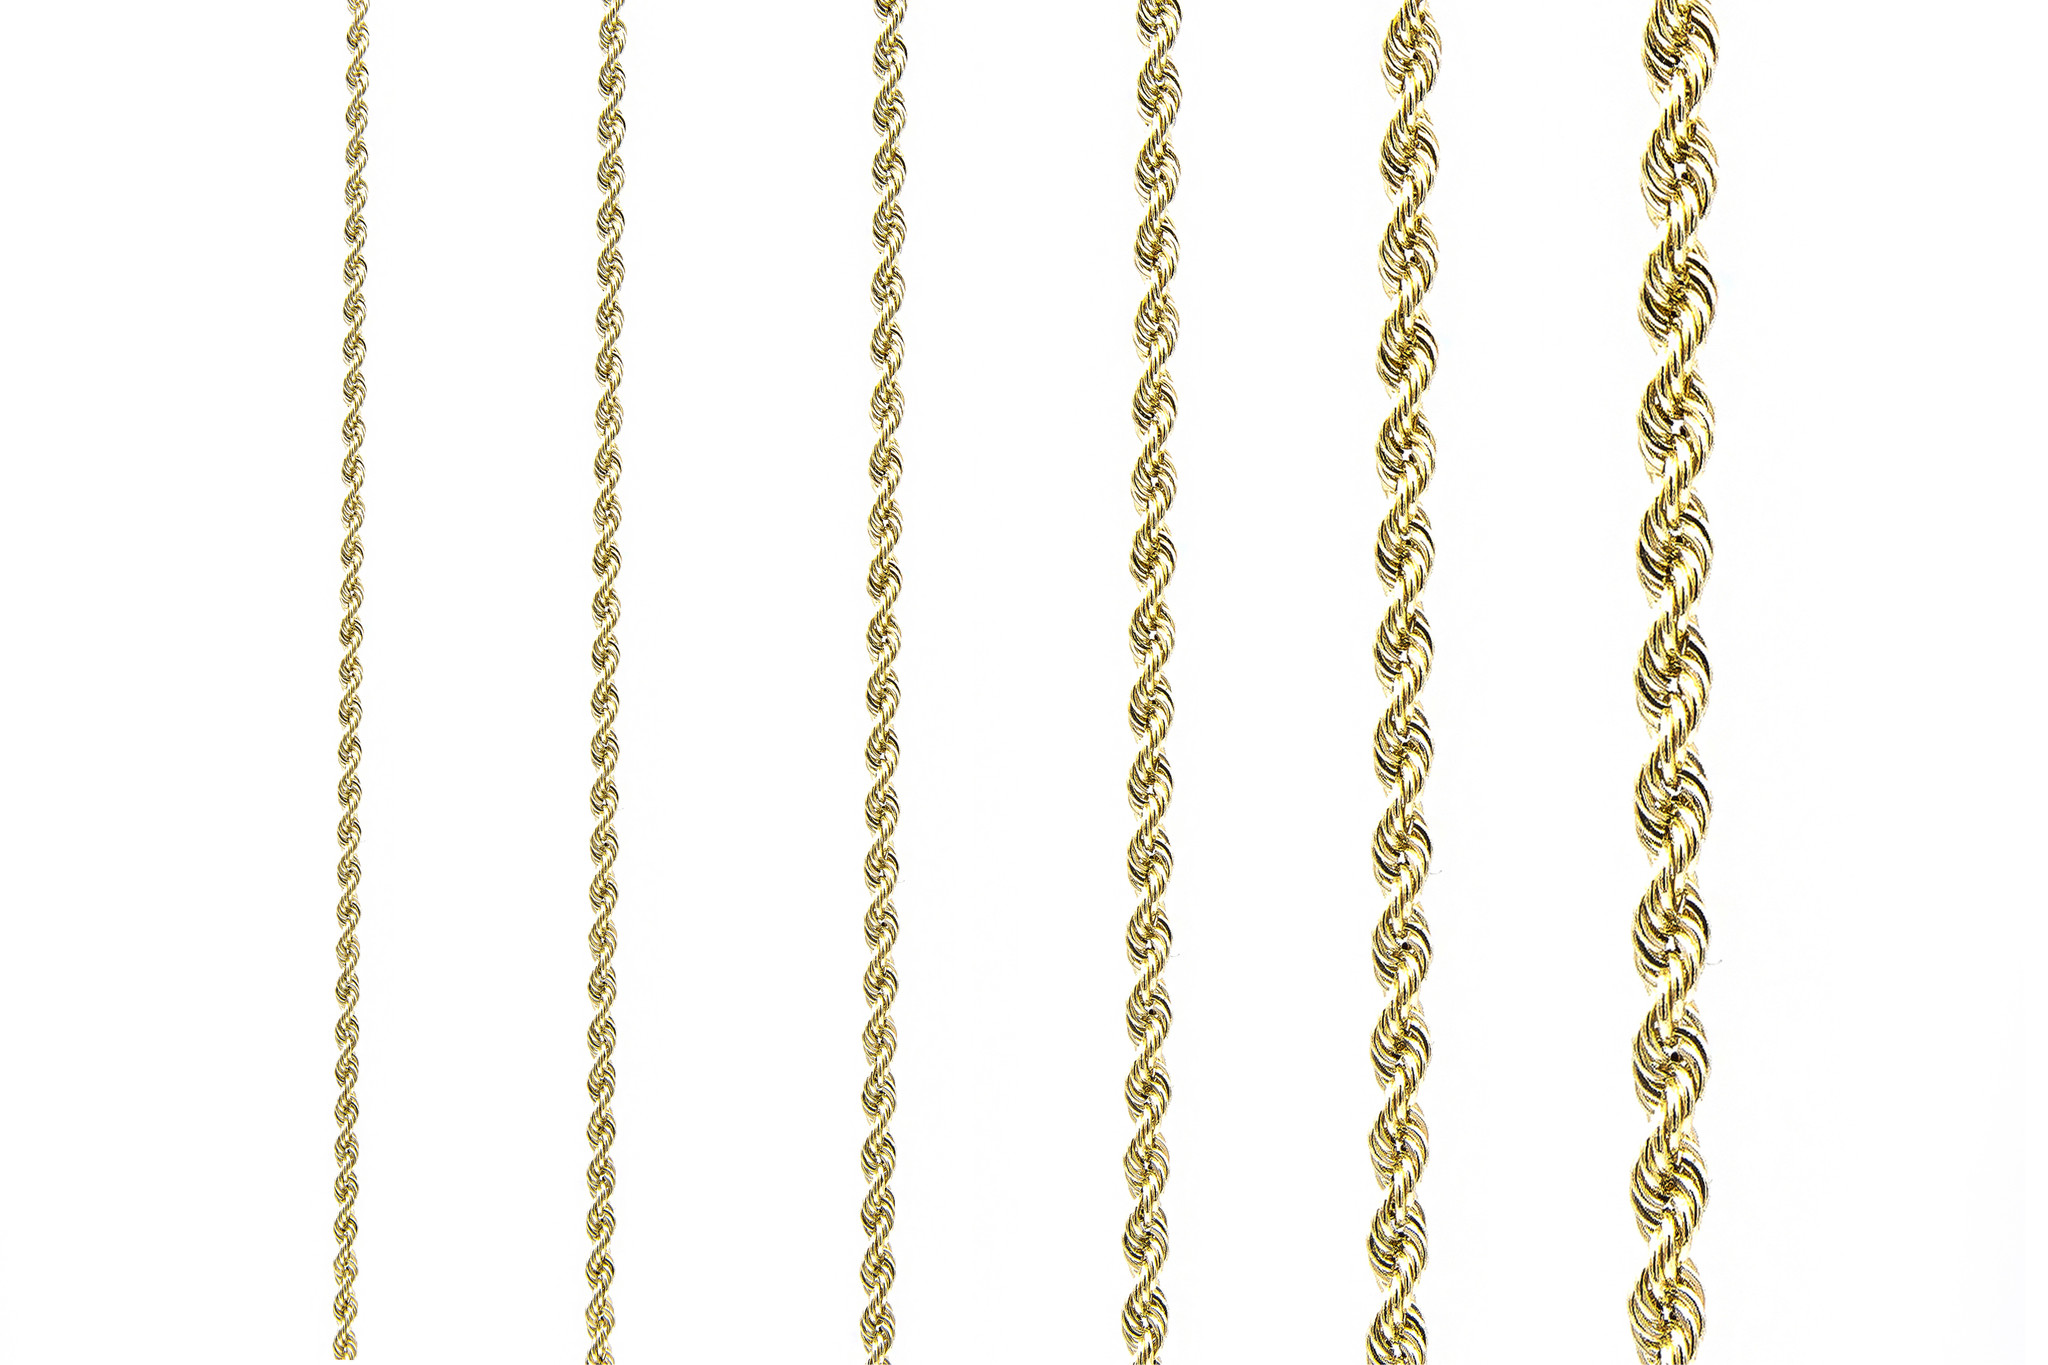 Rope Chain 14k - 4 mm-3